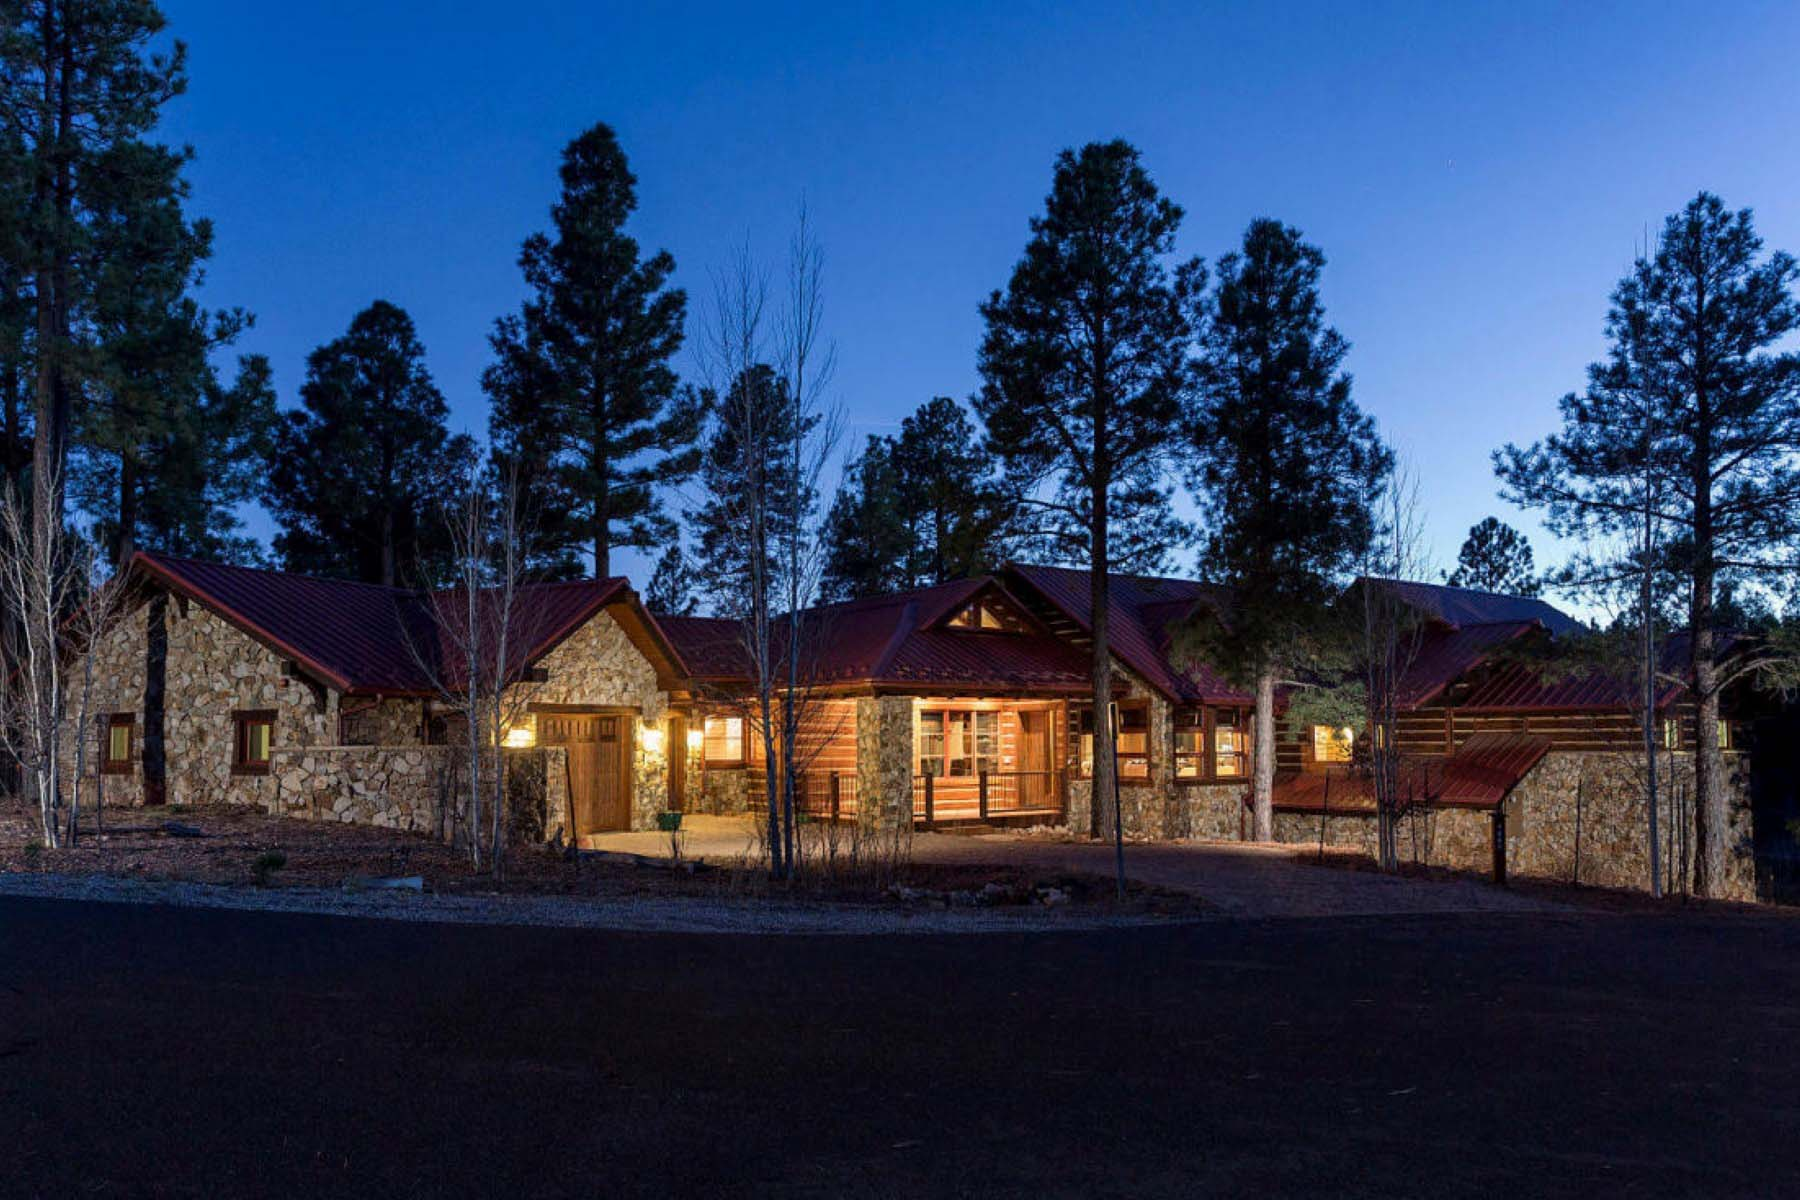 Single Family Home for Sale at Incredible Luxury Mountain Home On a Prime Cul-de-Sac in Exclusive Pine Canyon 1887 E Marengo Court Flagstaff, Arizona 86005 United States